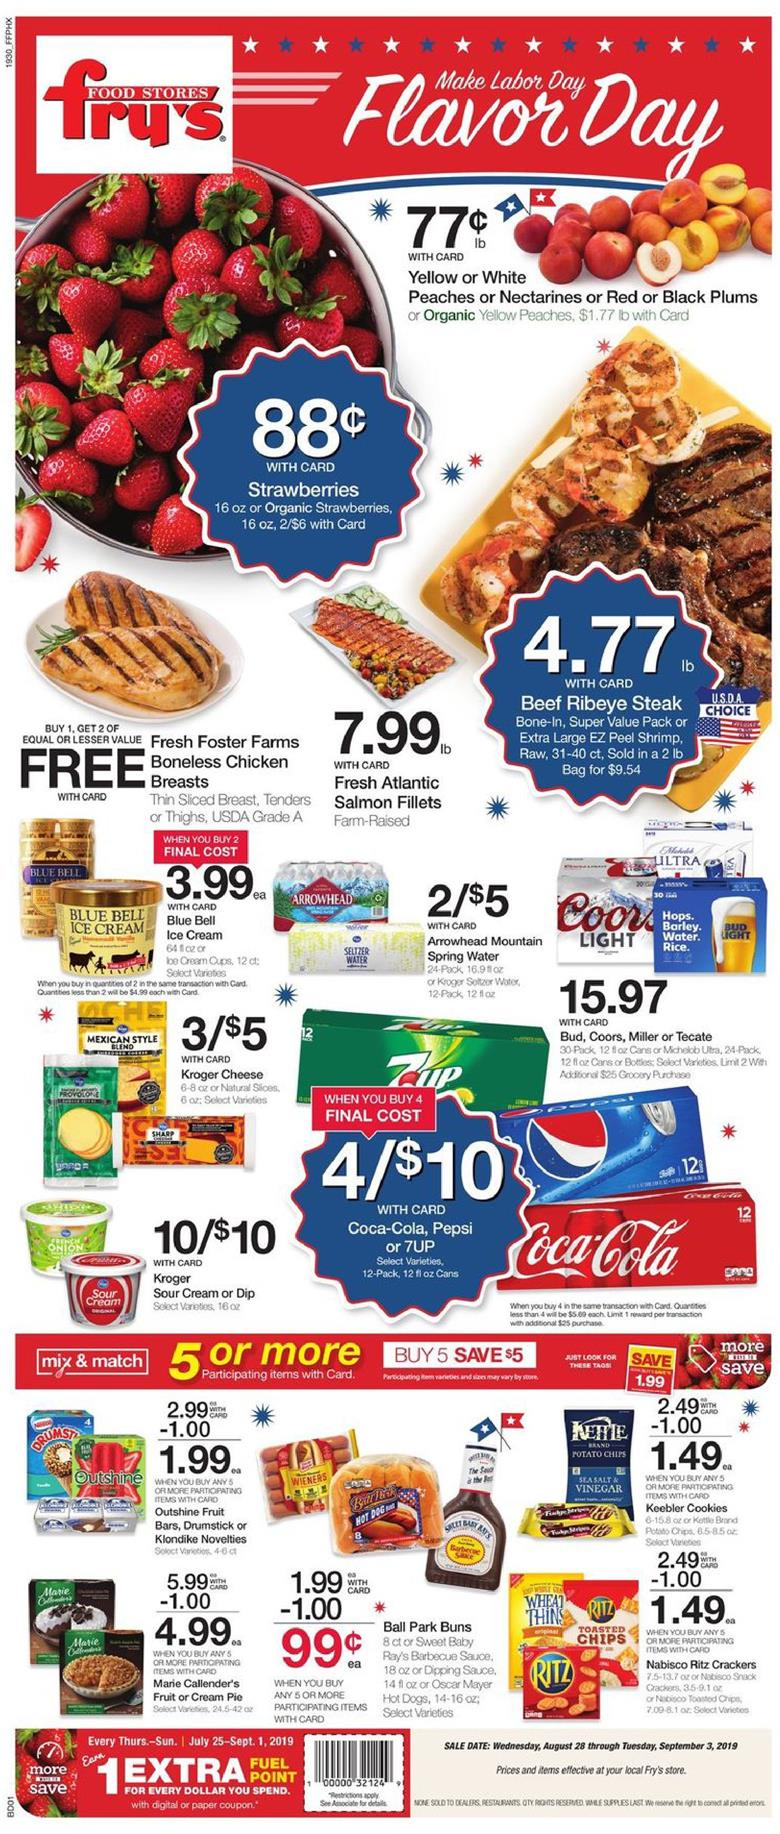 frys weekly ad aug 28 2019